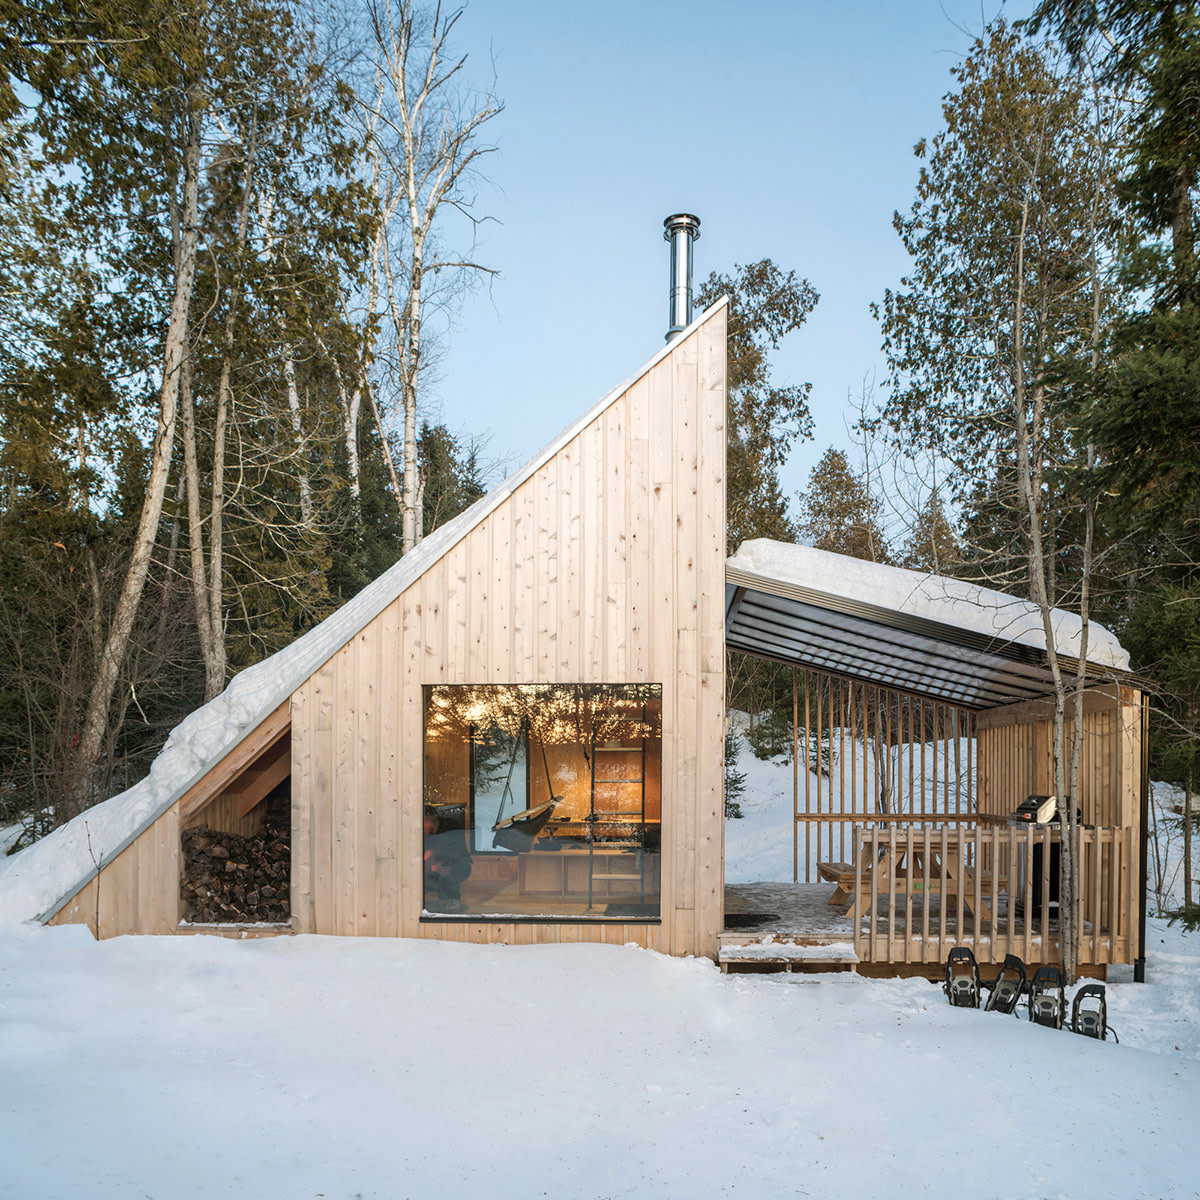 The Classic A-Frame Cabin Gets Reinterpreted in Rural Quebec